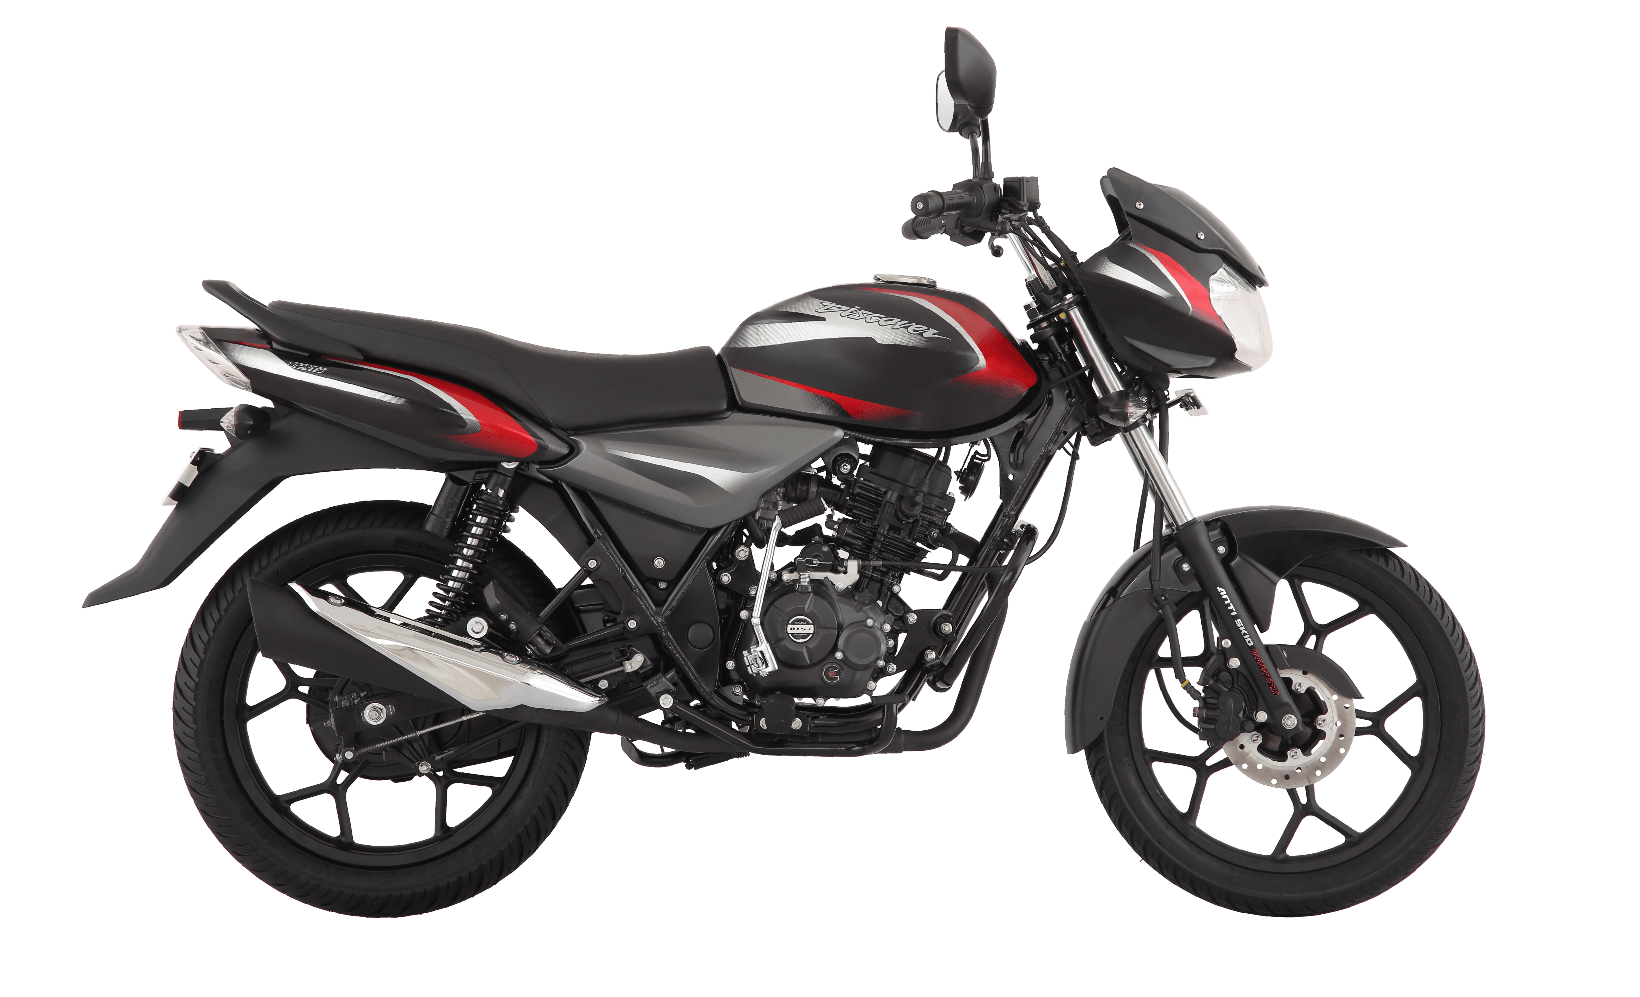 Black and red color bajaj discover 125cc disk motorcycle with dtsi engine side view